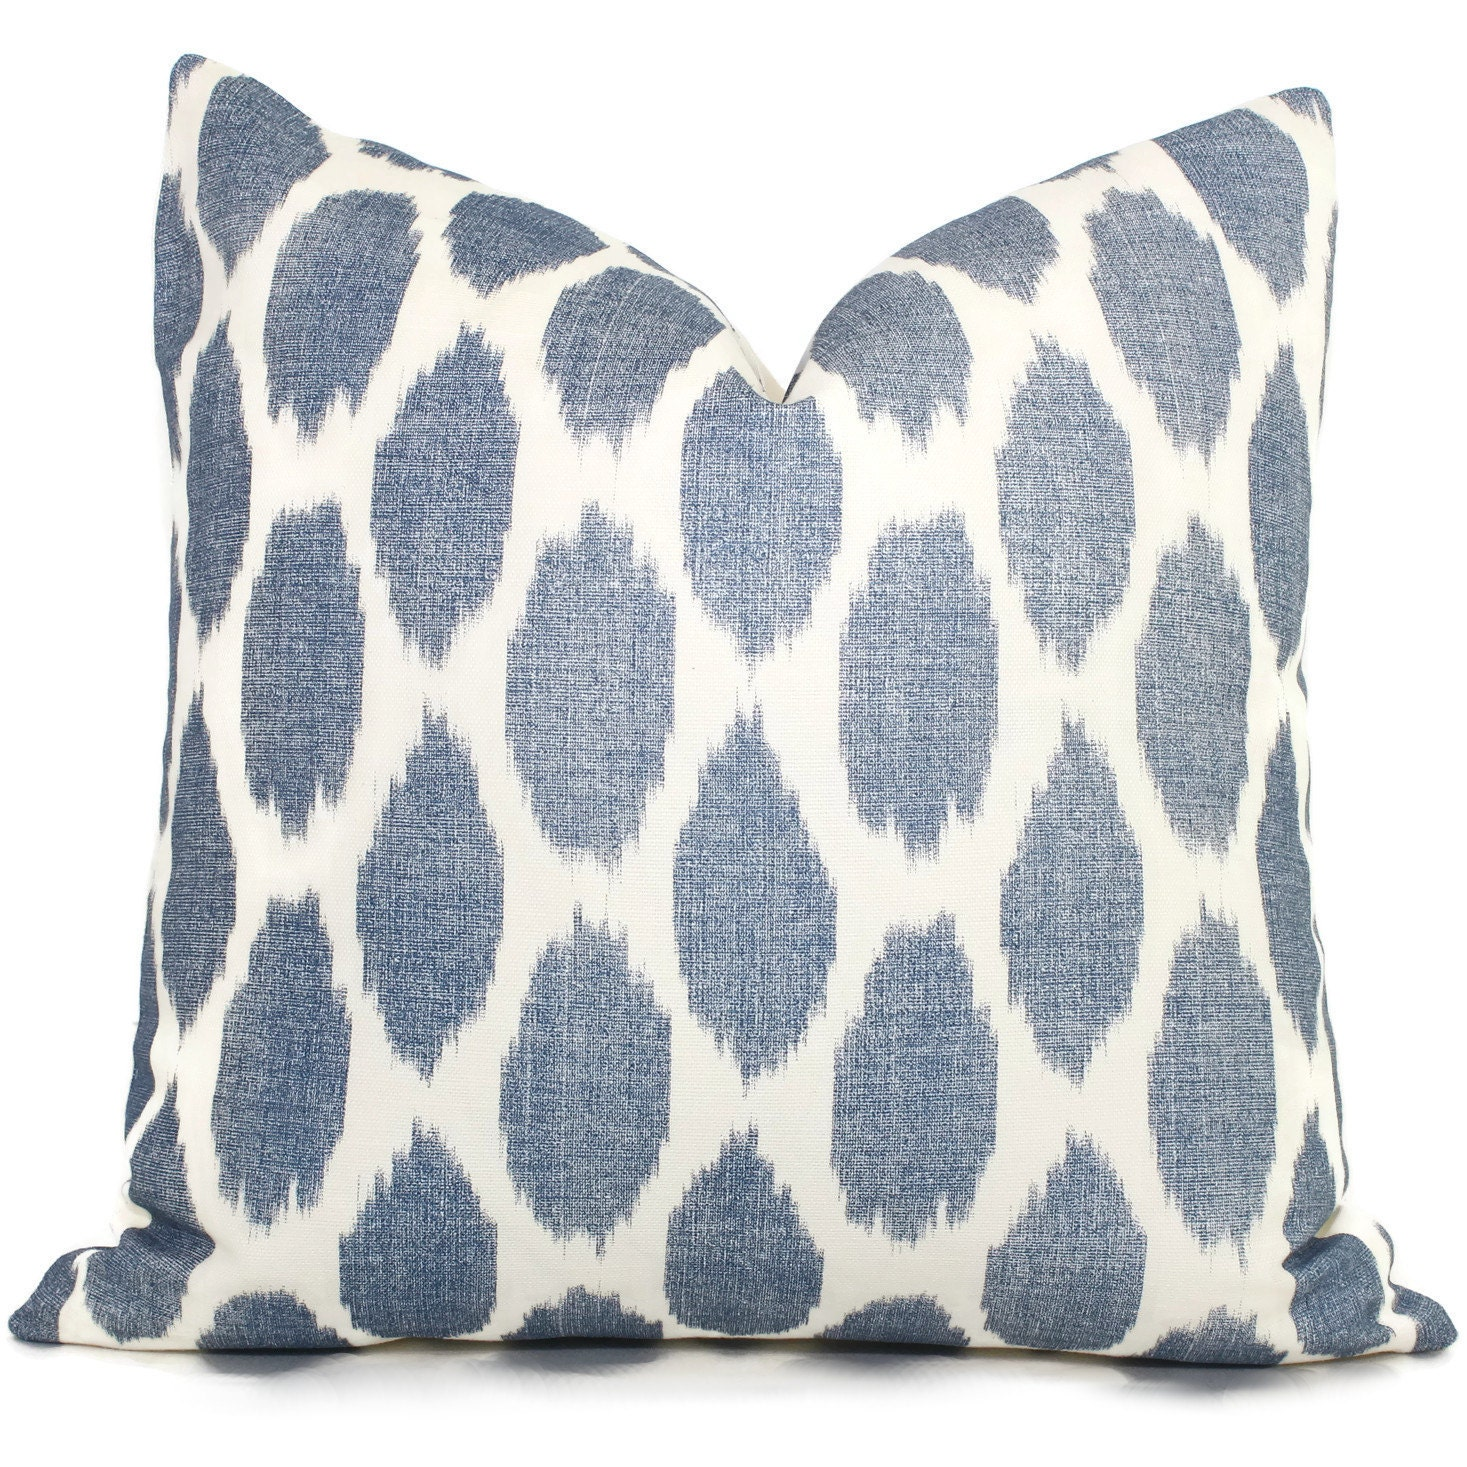 Navy Blue Adras Ikat Quadrille China Seas Pillow Cover Square